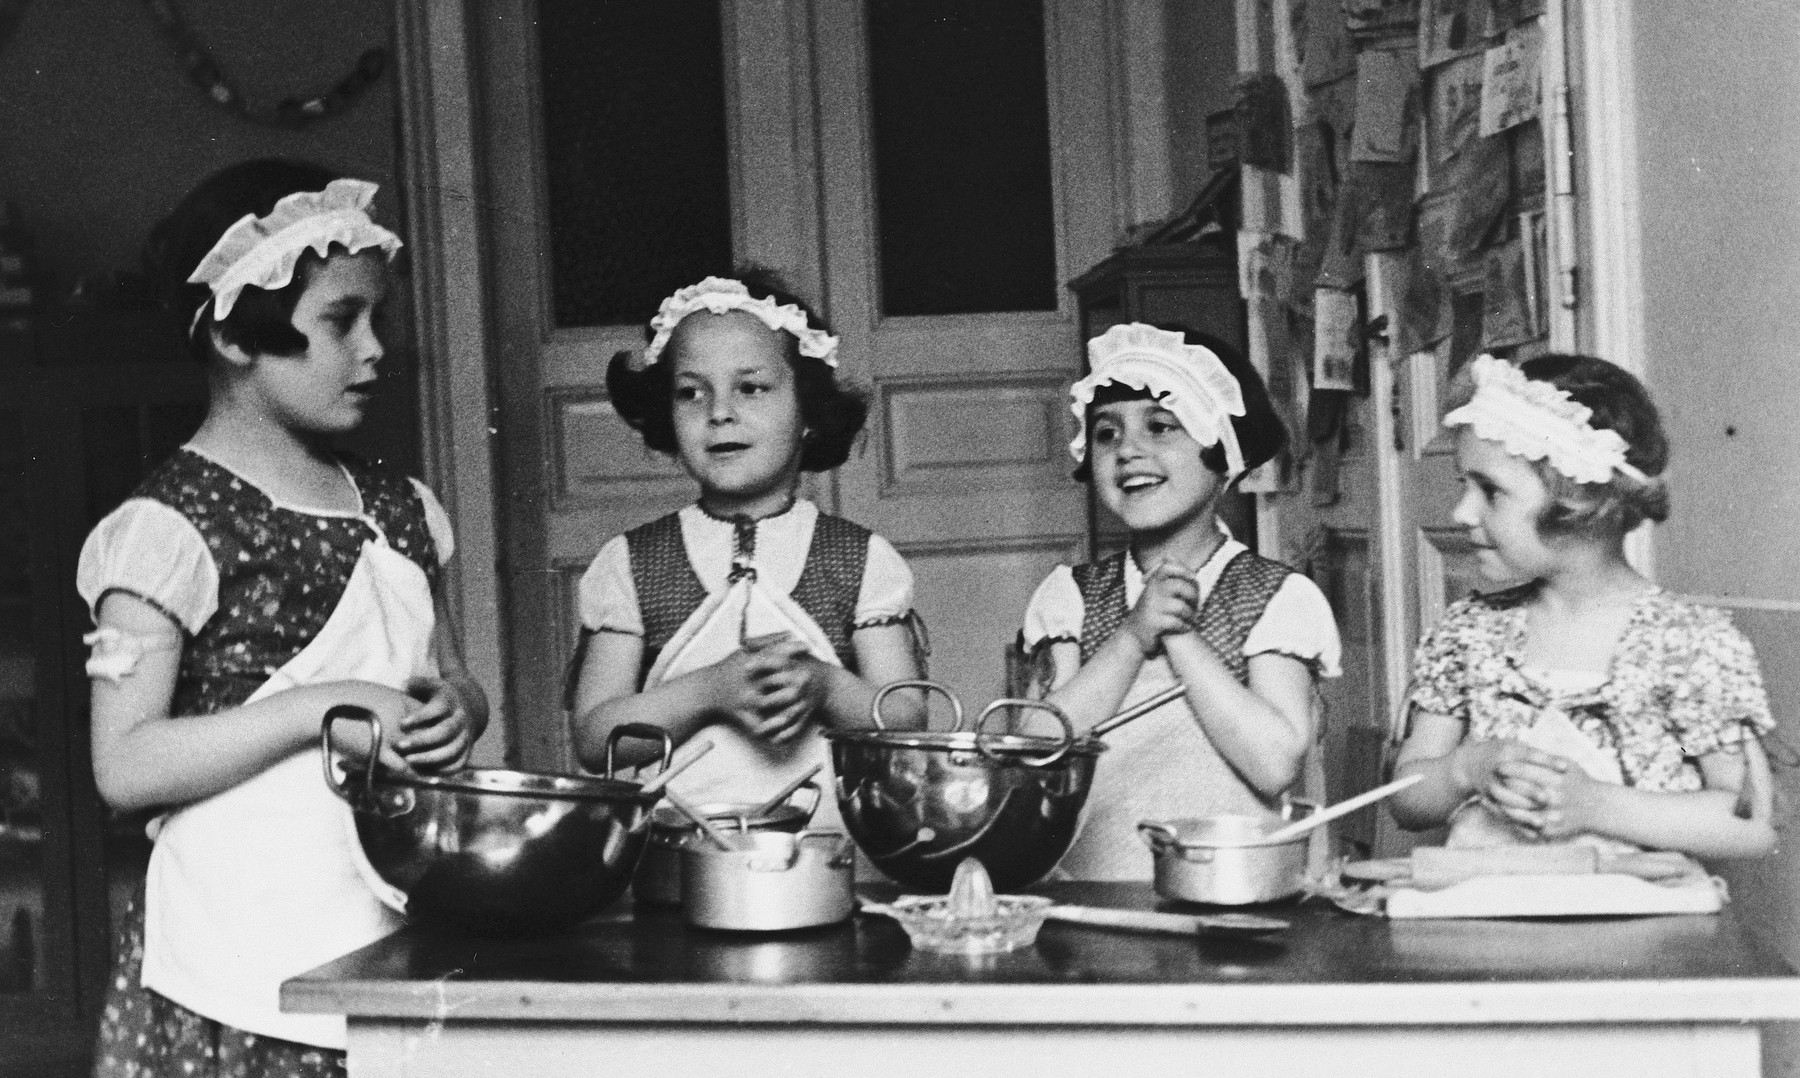 Kitty Weichherz and three friends practice cooking.  Kitty is pictured second from the right.  This photo was taken from the diary of Kitty's life written by her father, Bela Weichherz.